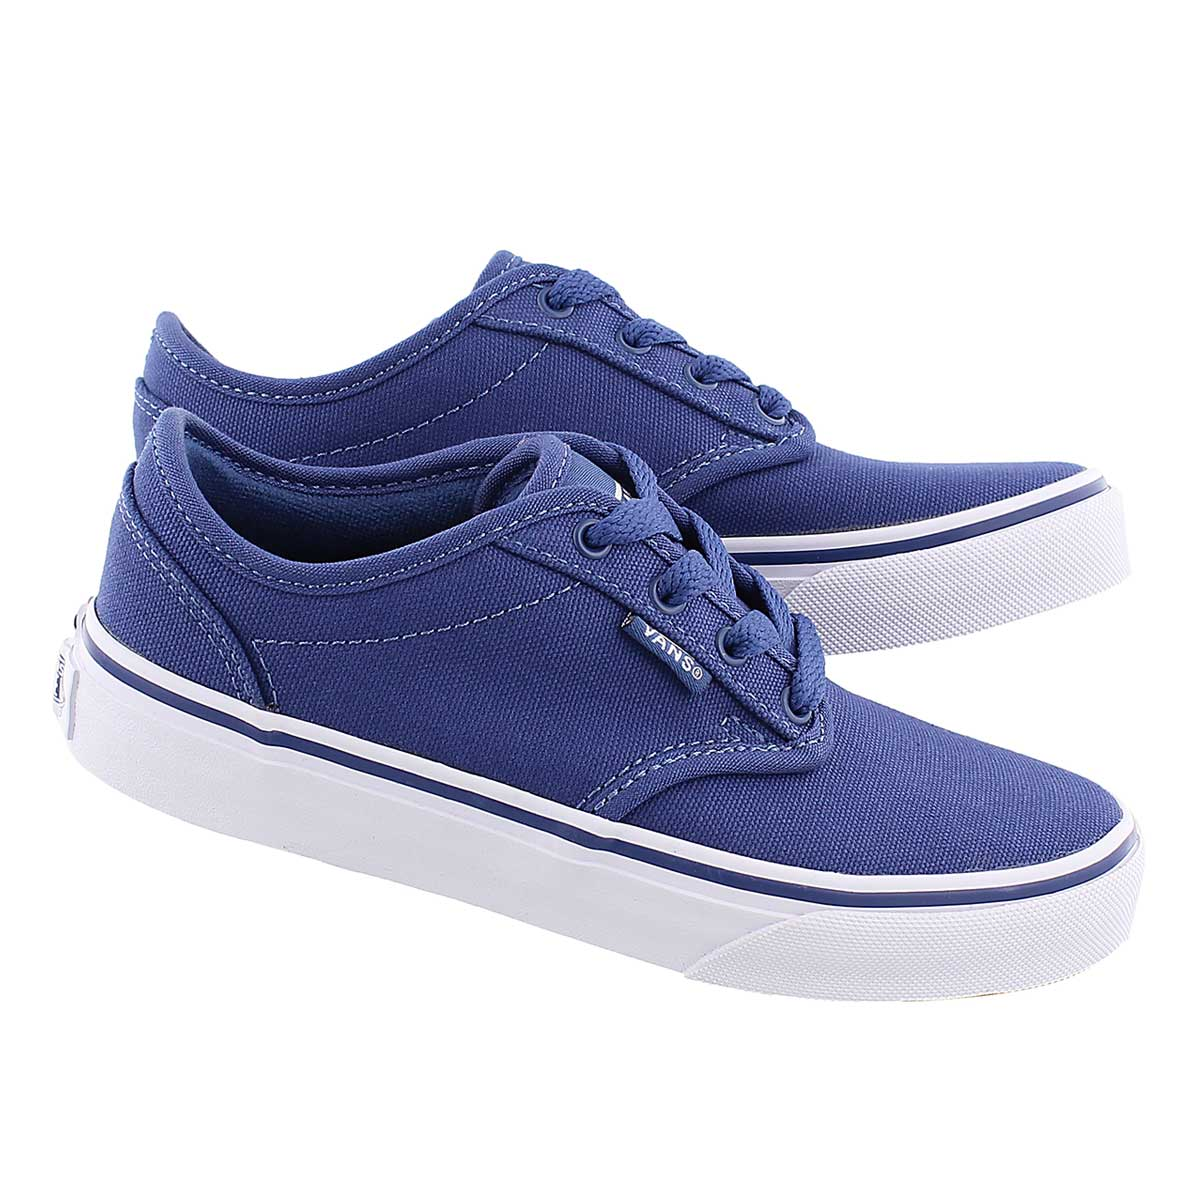 Bys Atwood stu navy lace up sneaker